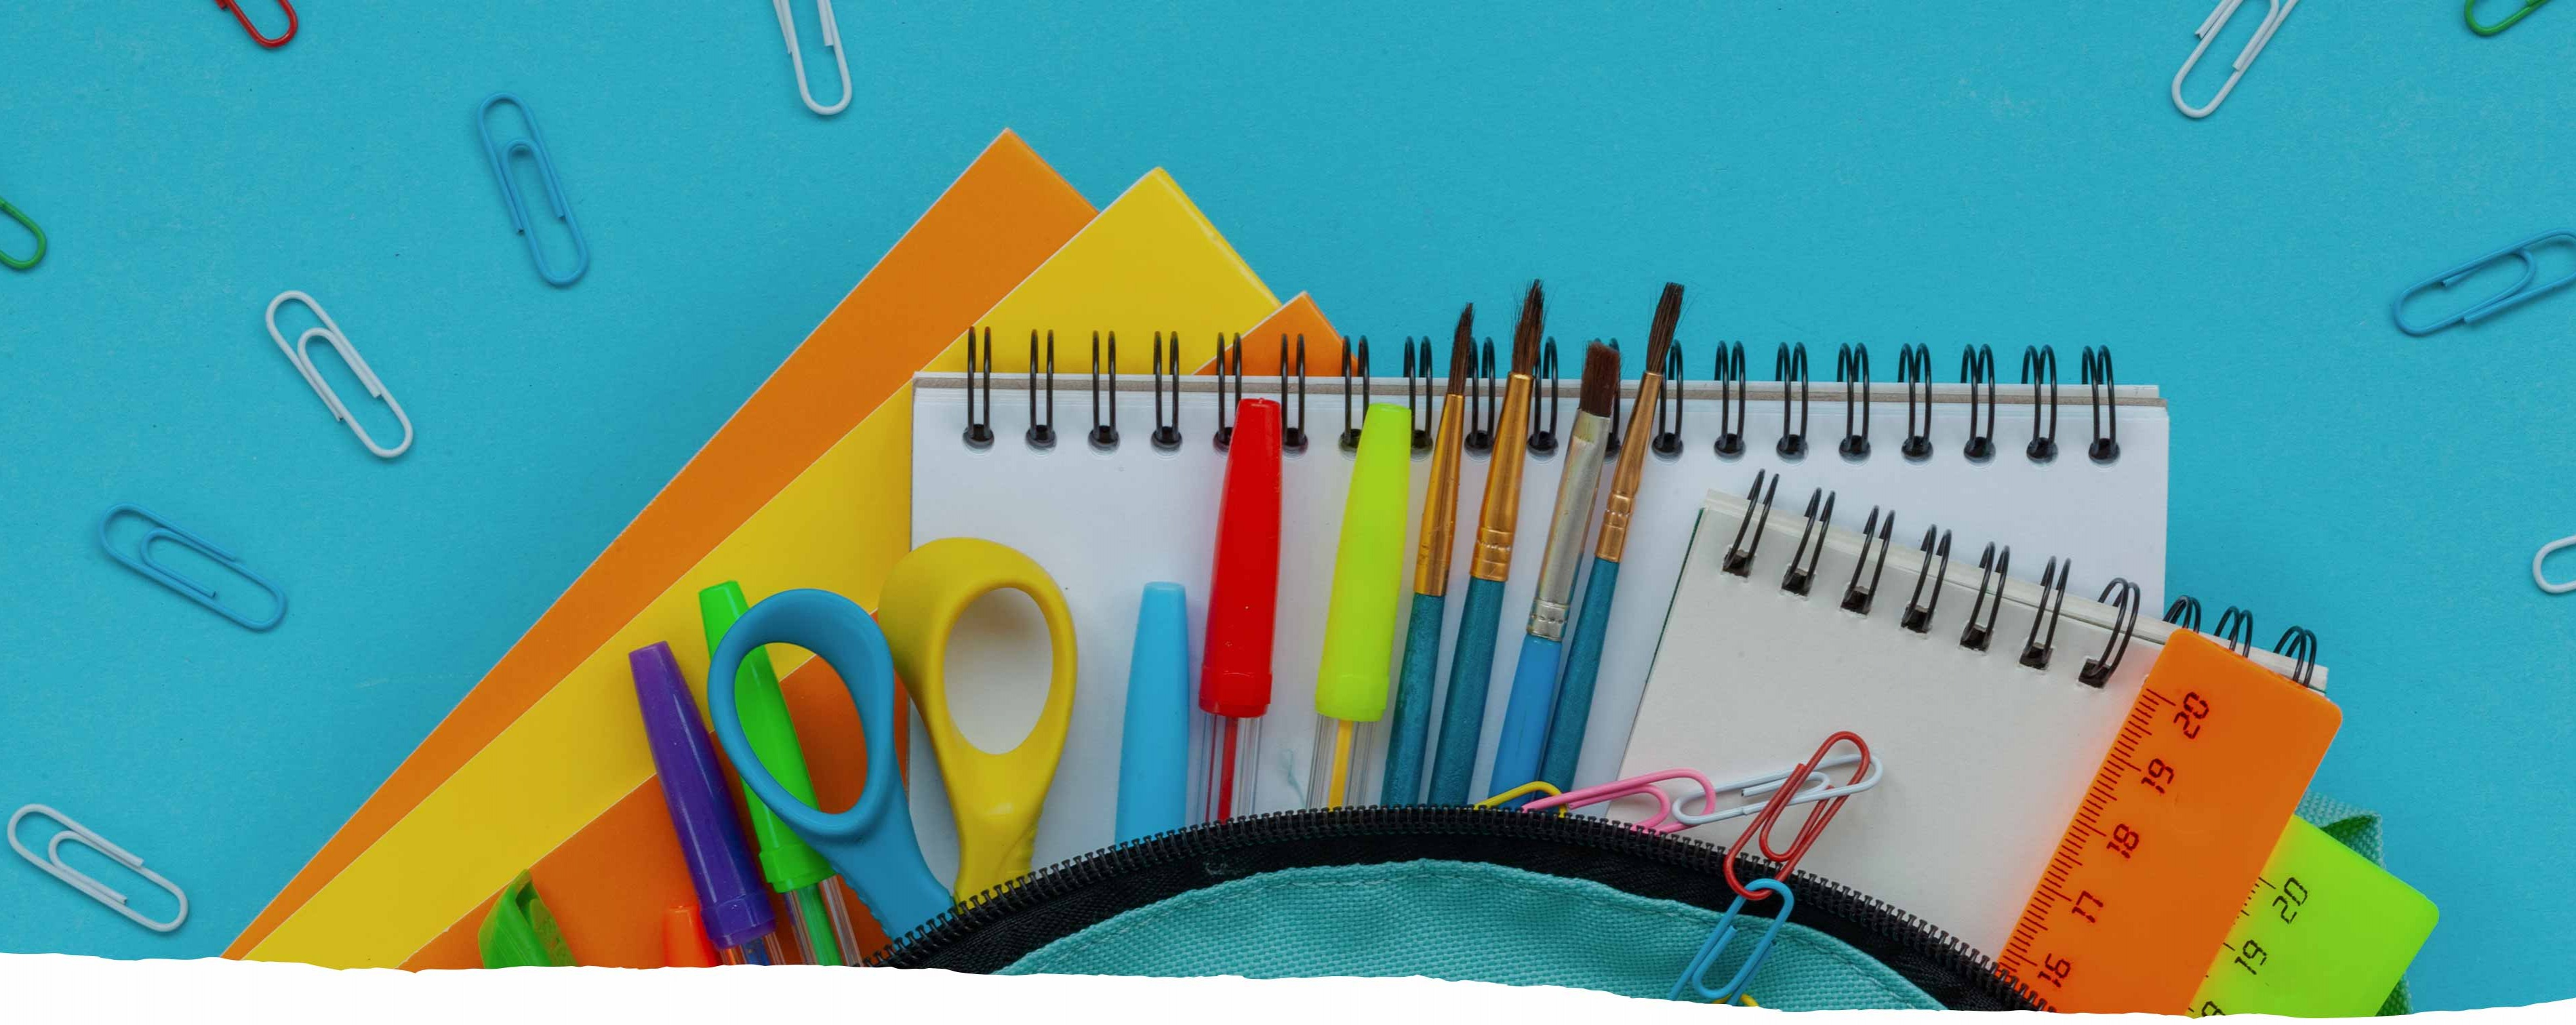 School supplies spilling out of a backpack, such as scissors, paperclips, pens, paintbrushes and a notebook.